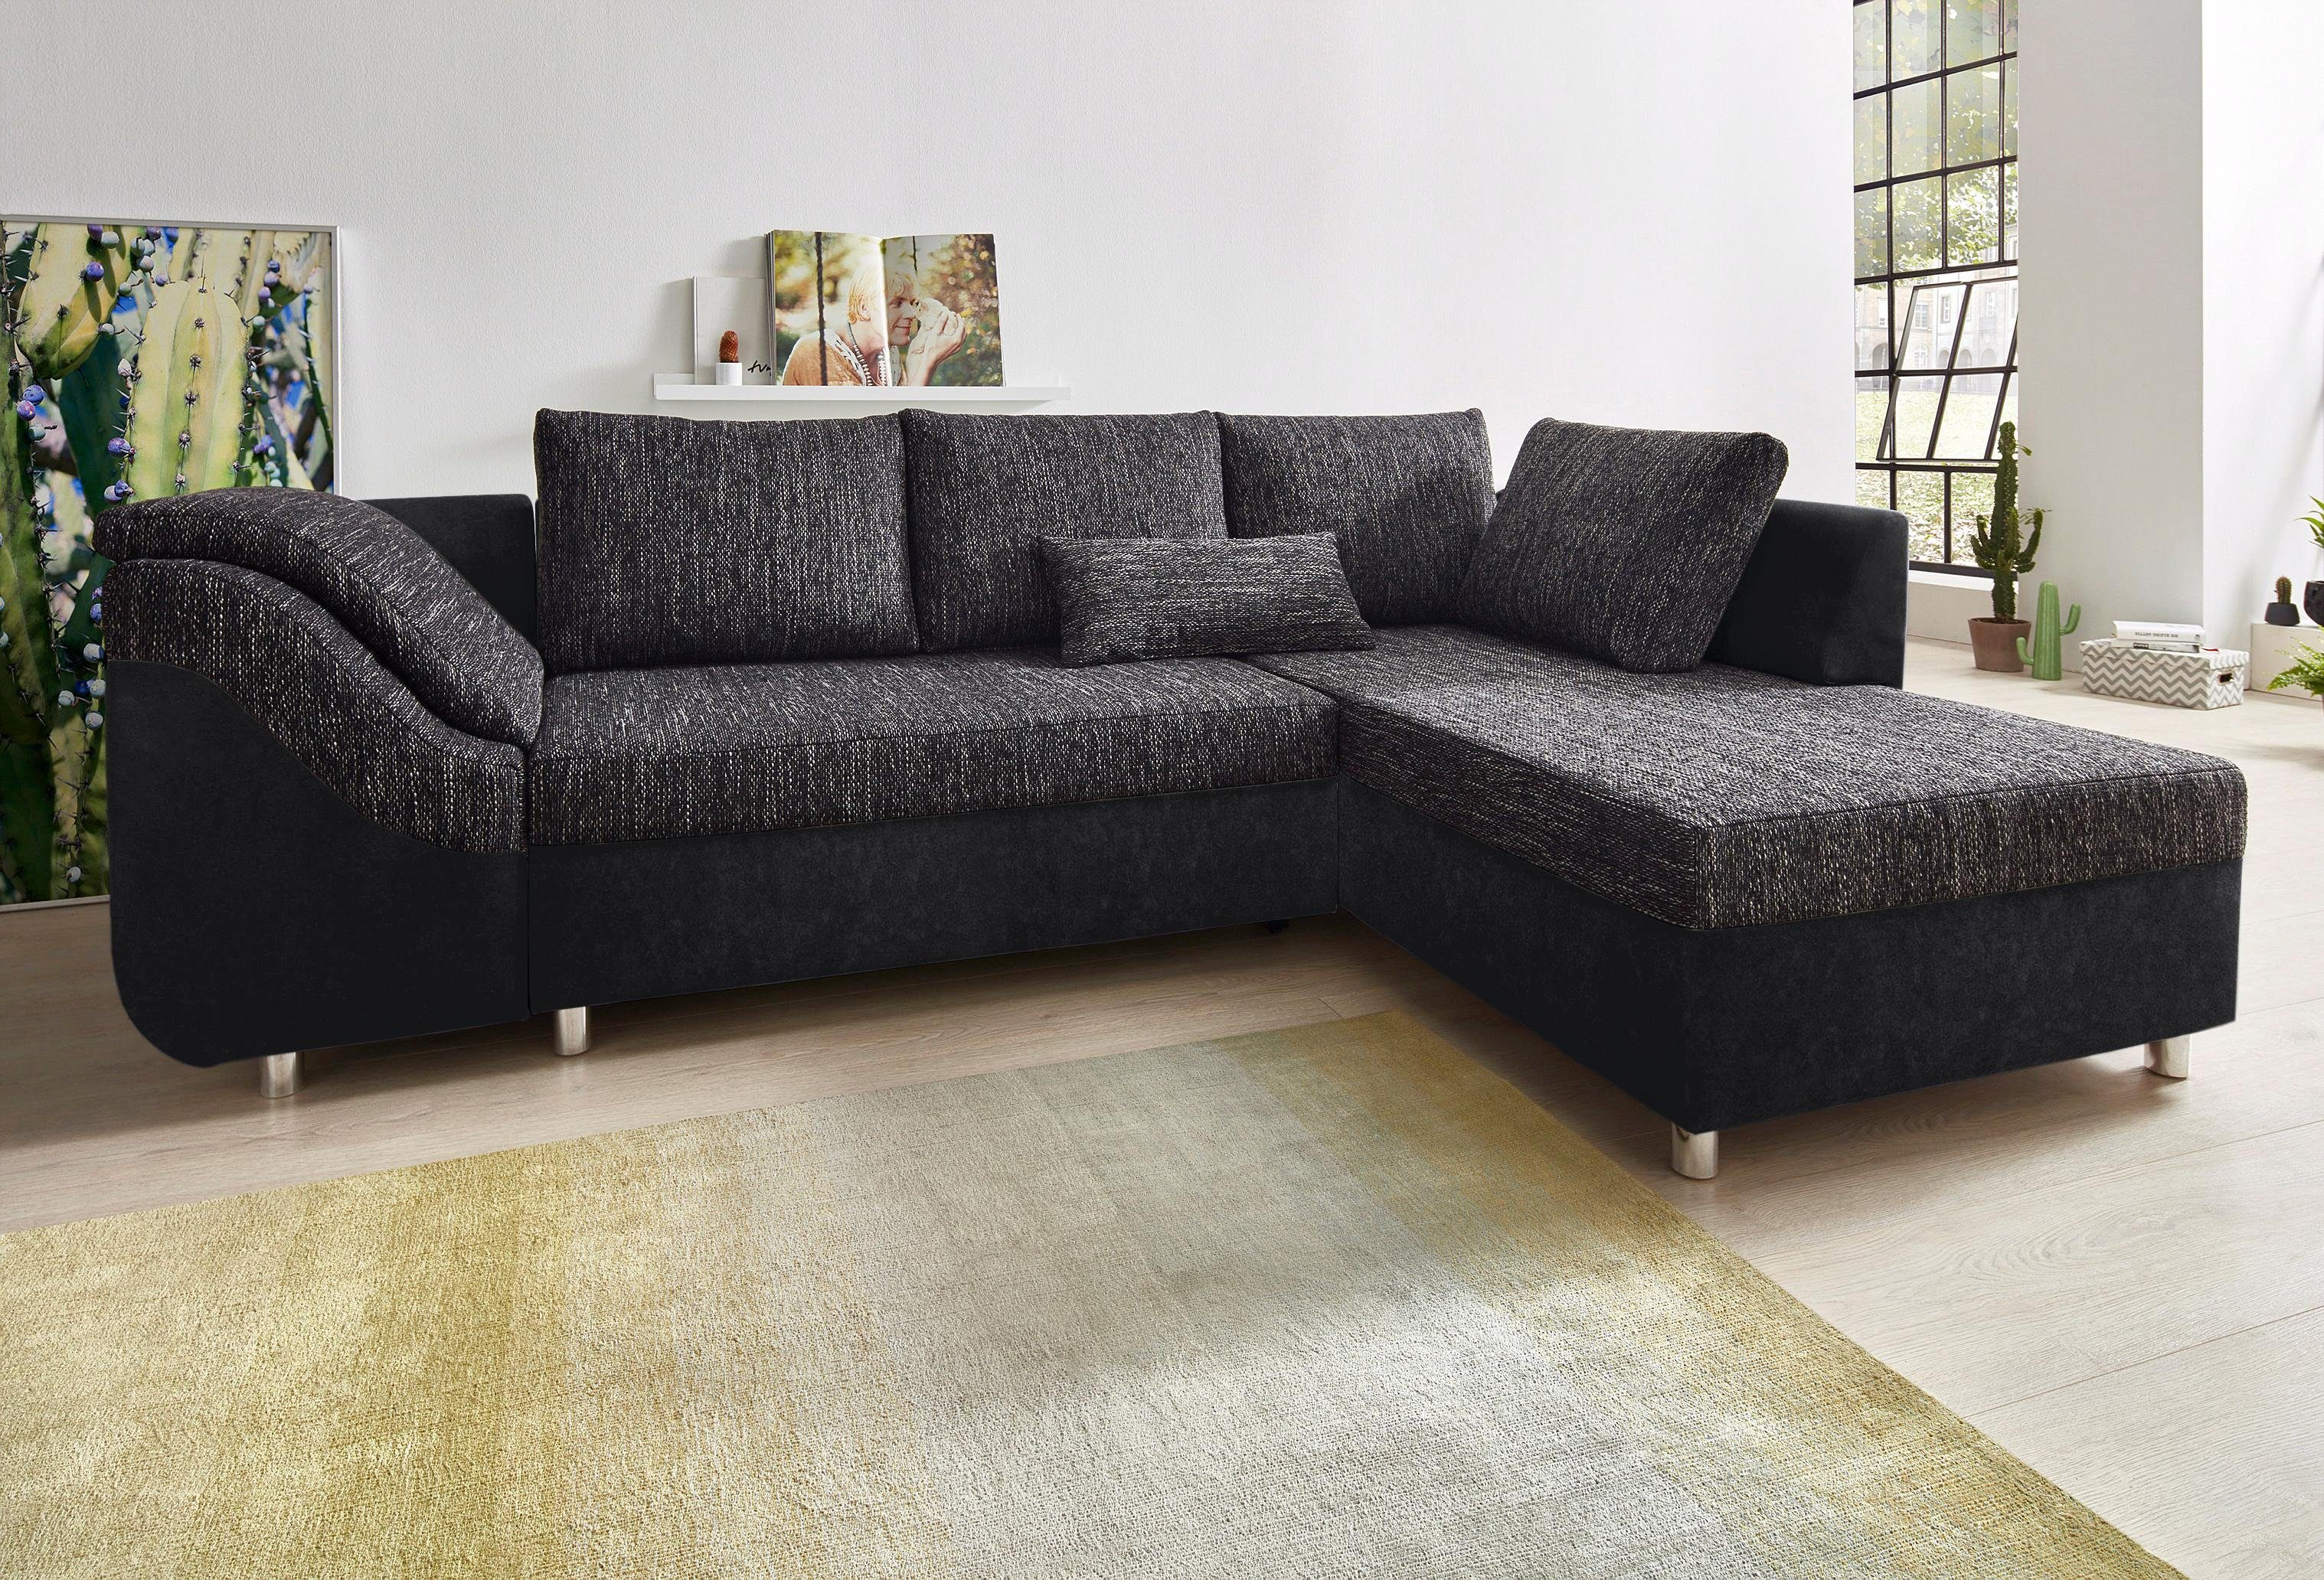 Otto Sofa Klein Collection Ab Polsterecke Mit Bettfunktion Und Bettkasten